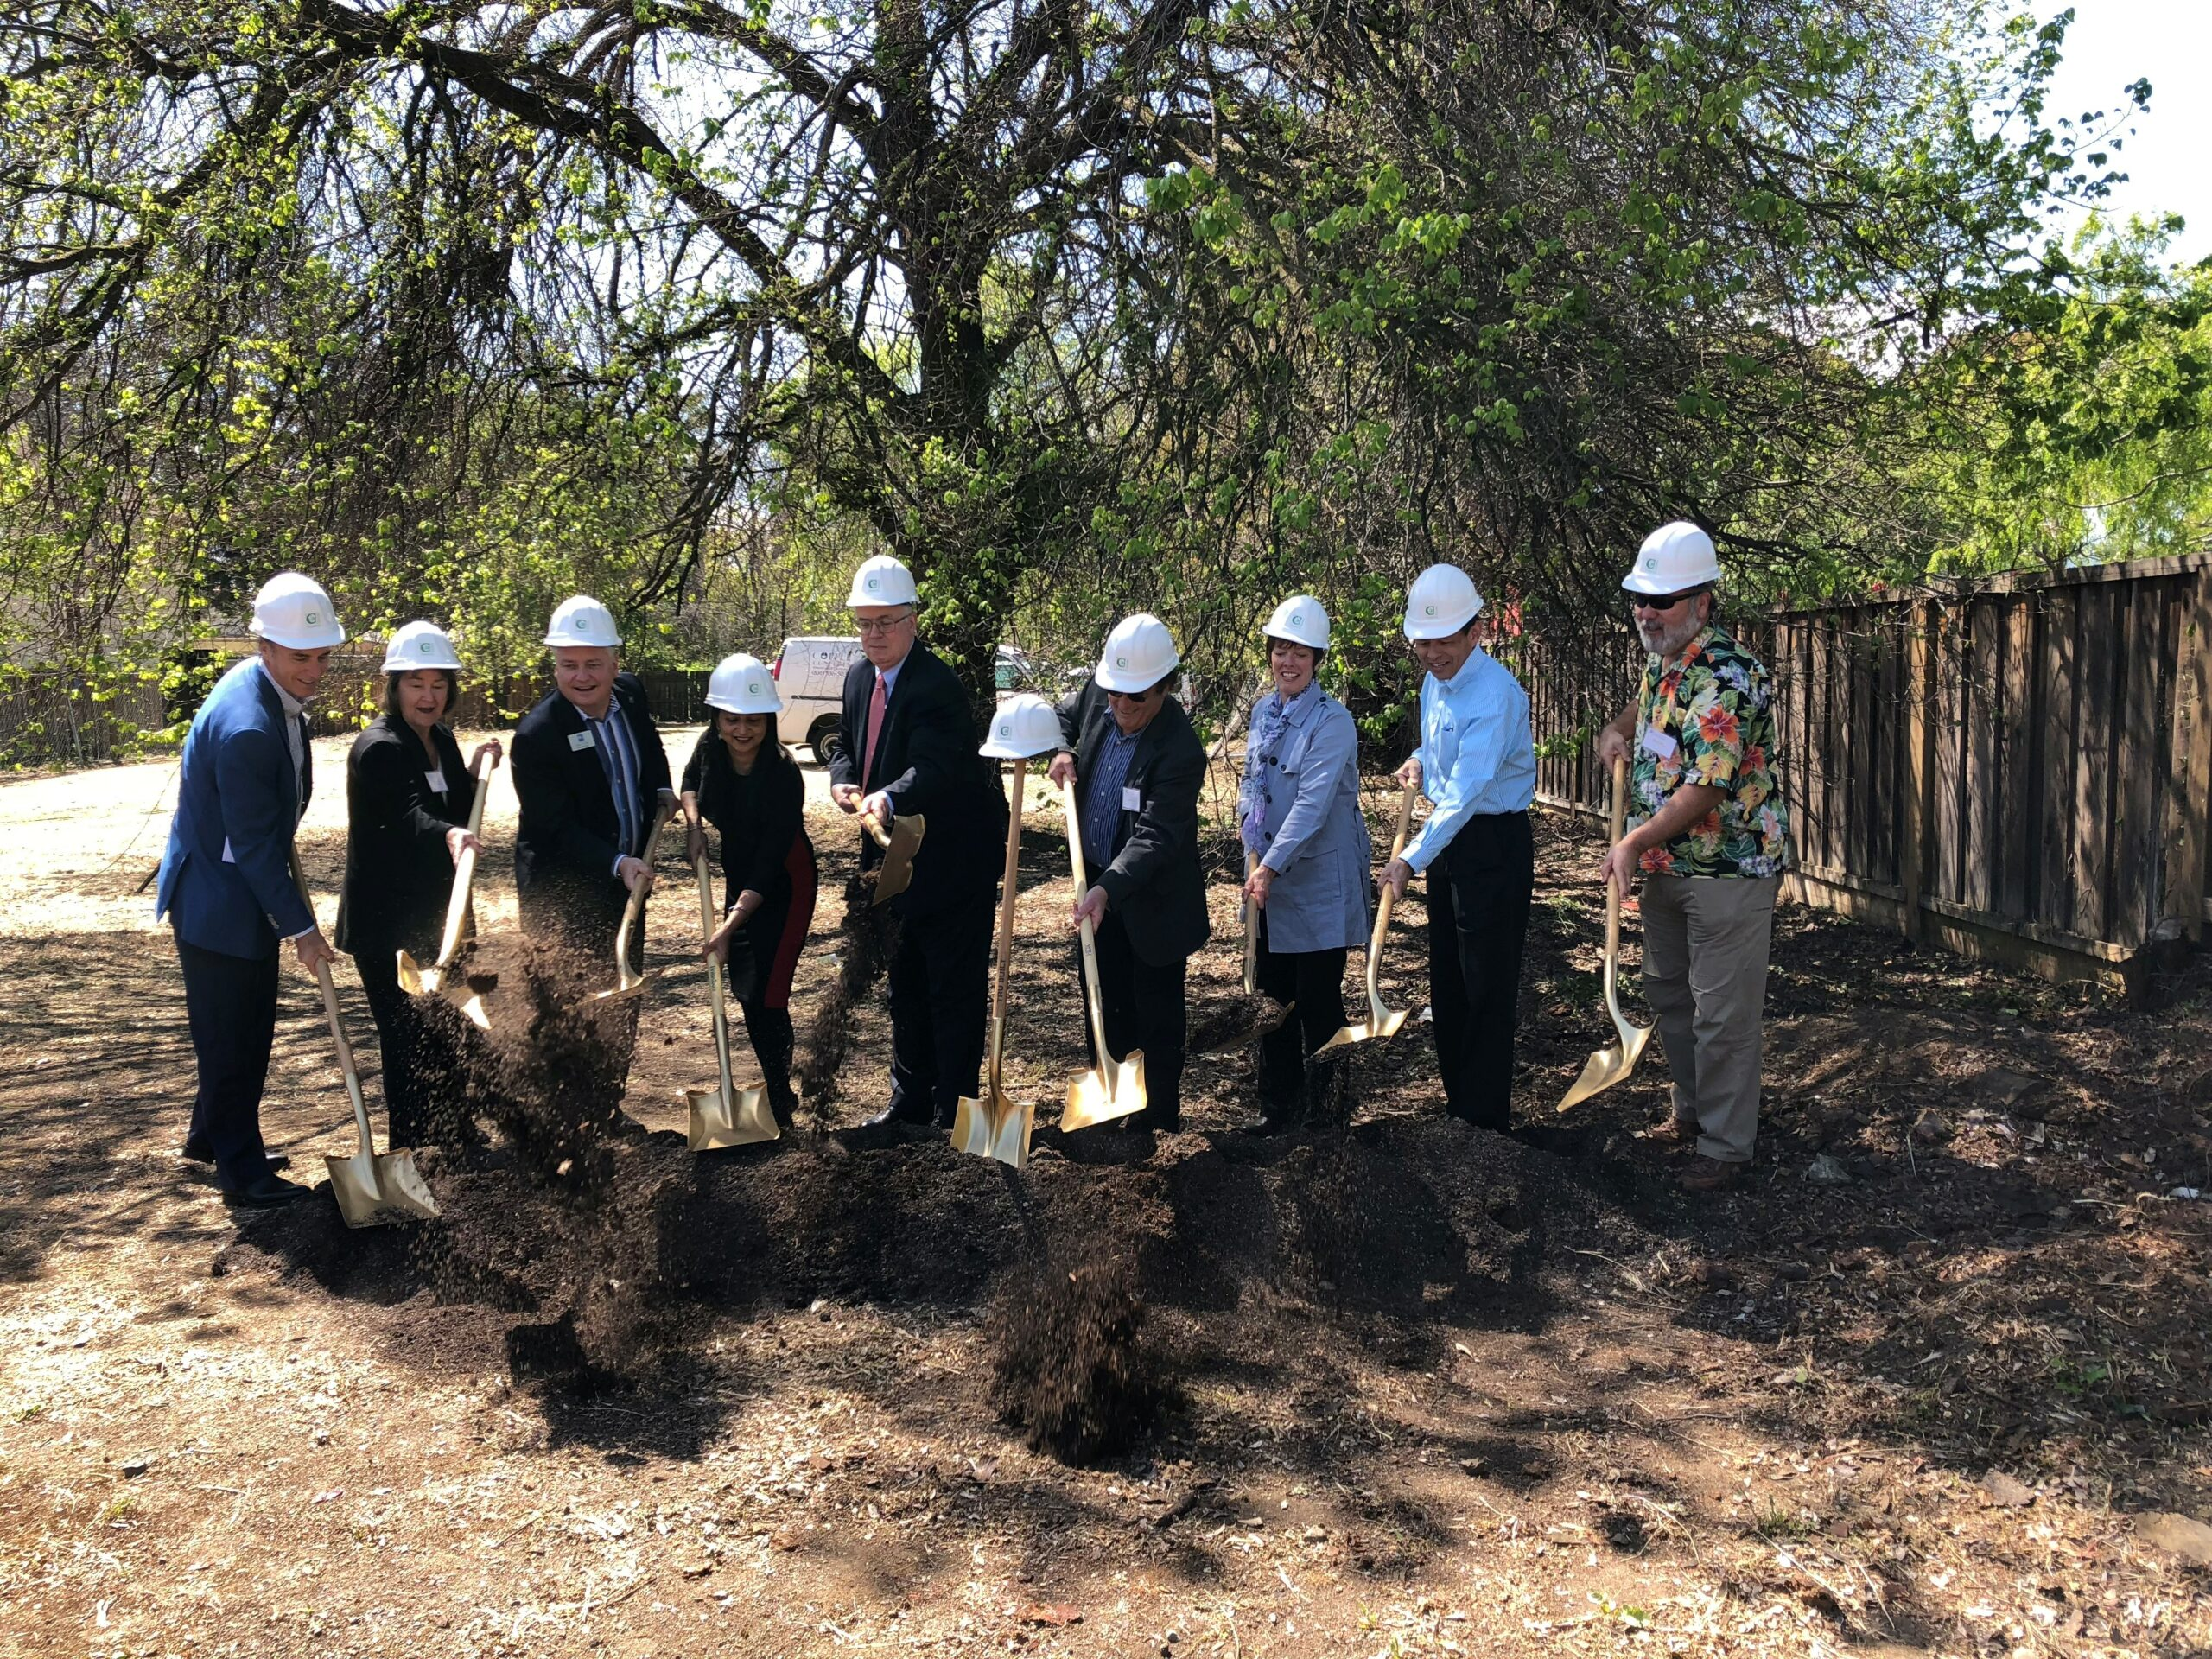 At the Veranda groundbreaking in Cupertino, April 19, 2018